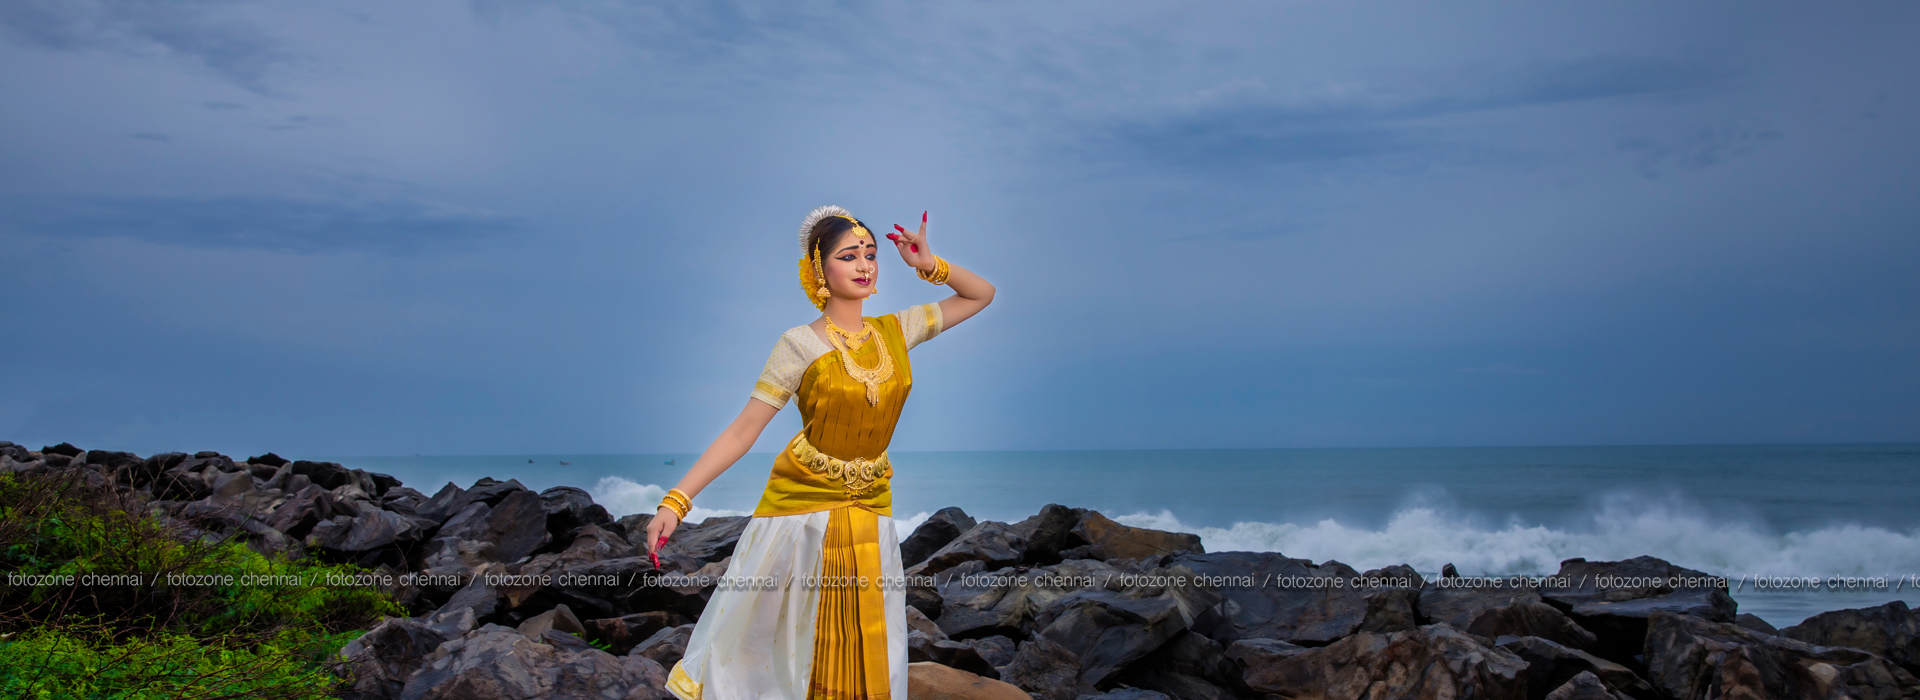 Indian Classical Dance Photo Shoot